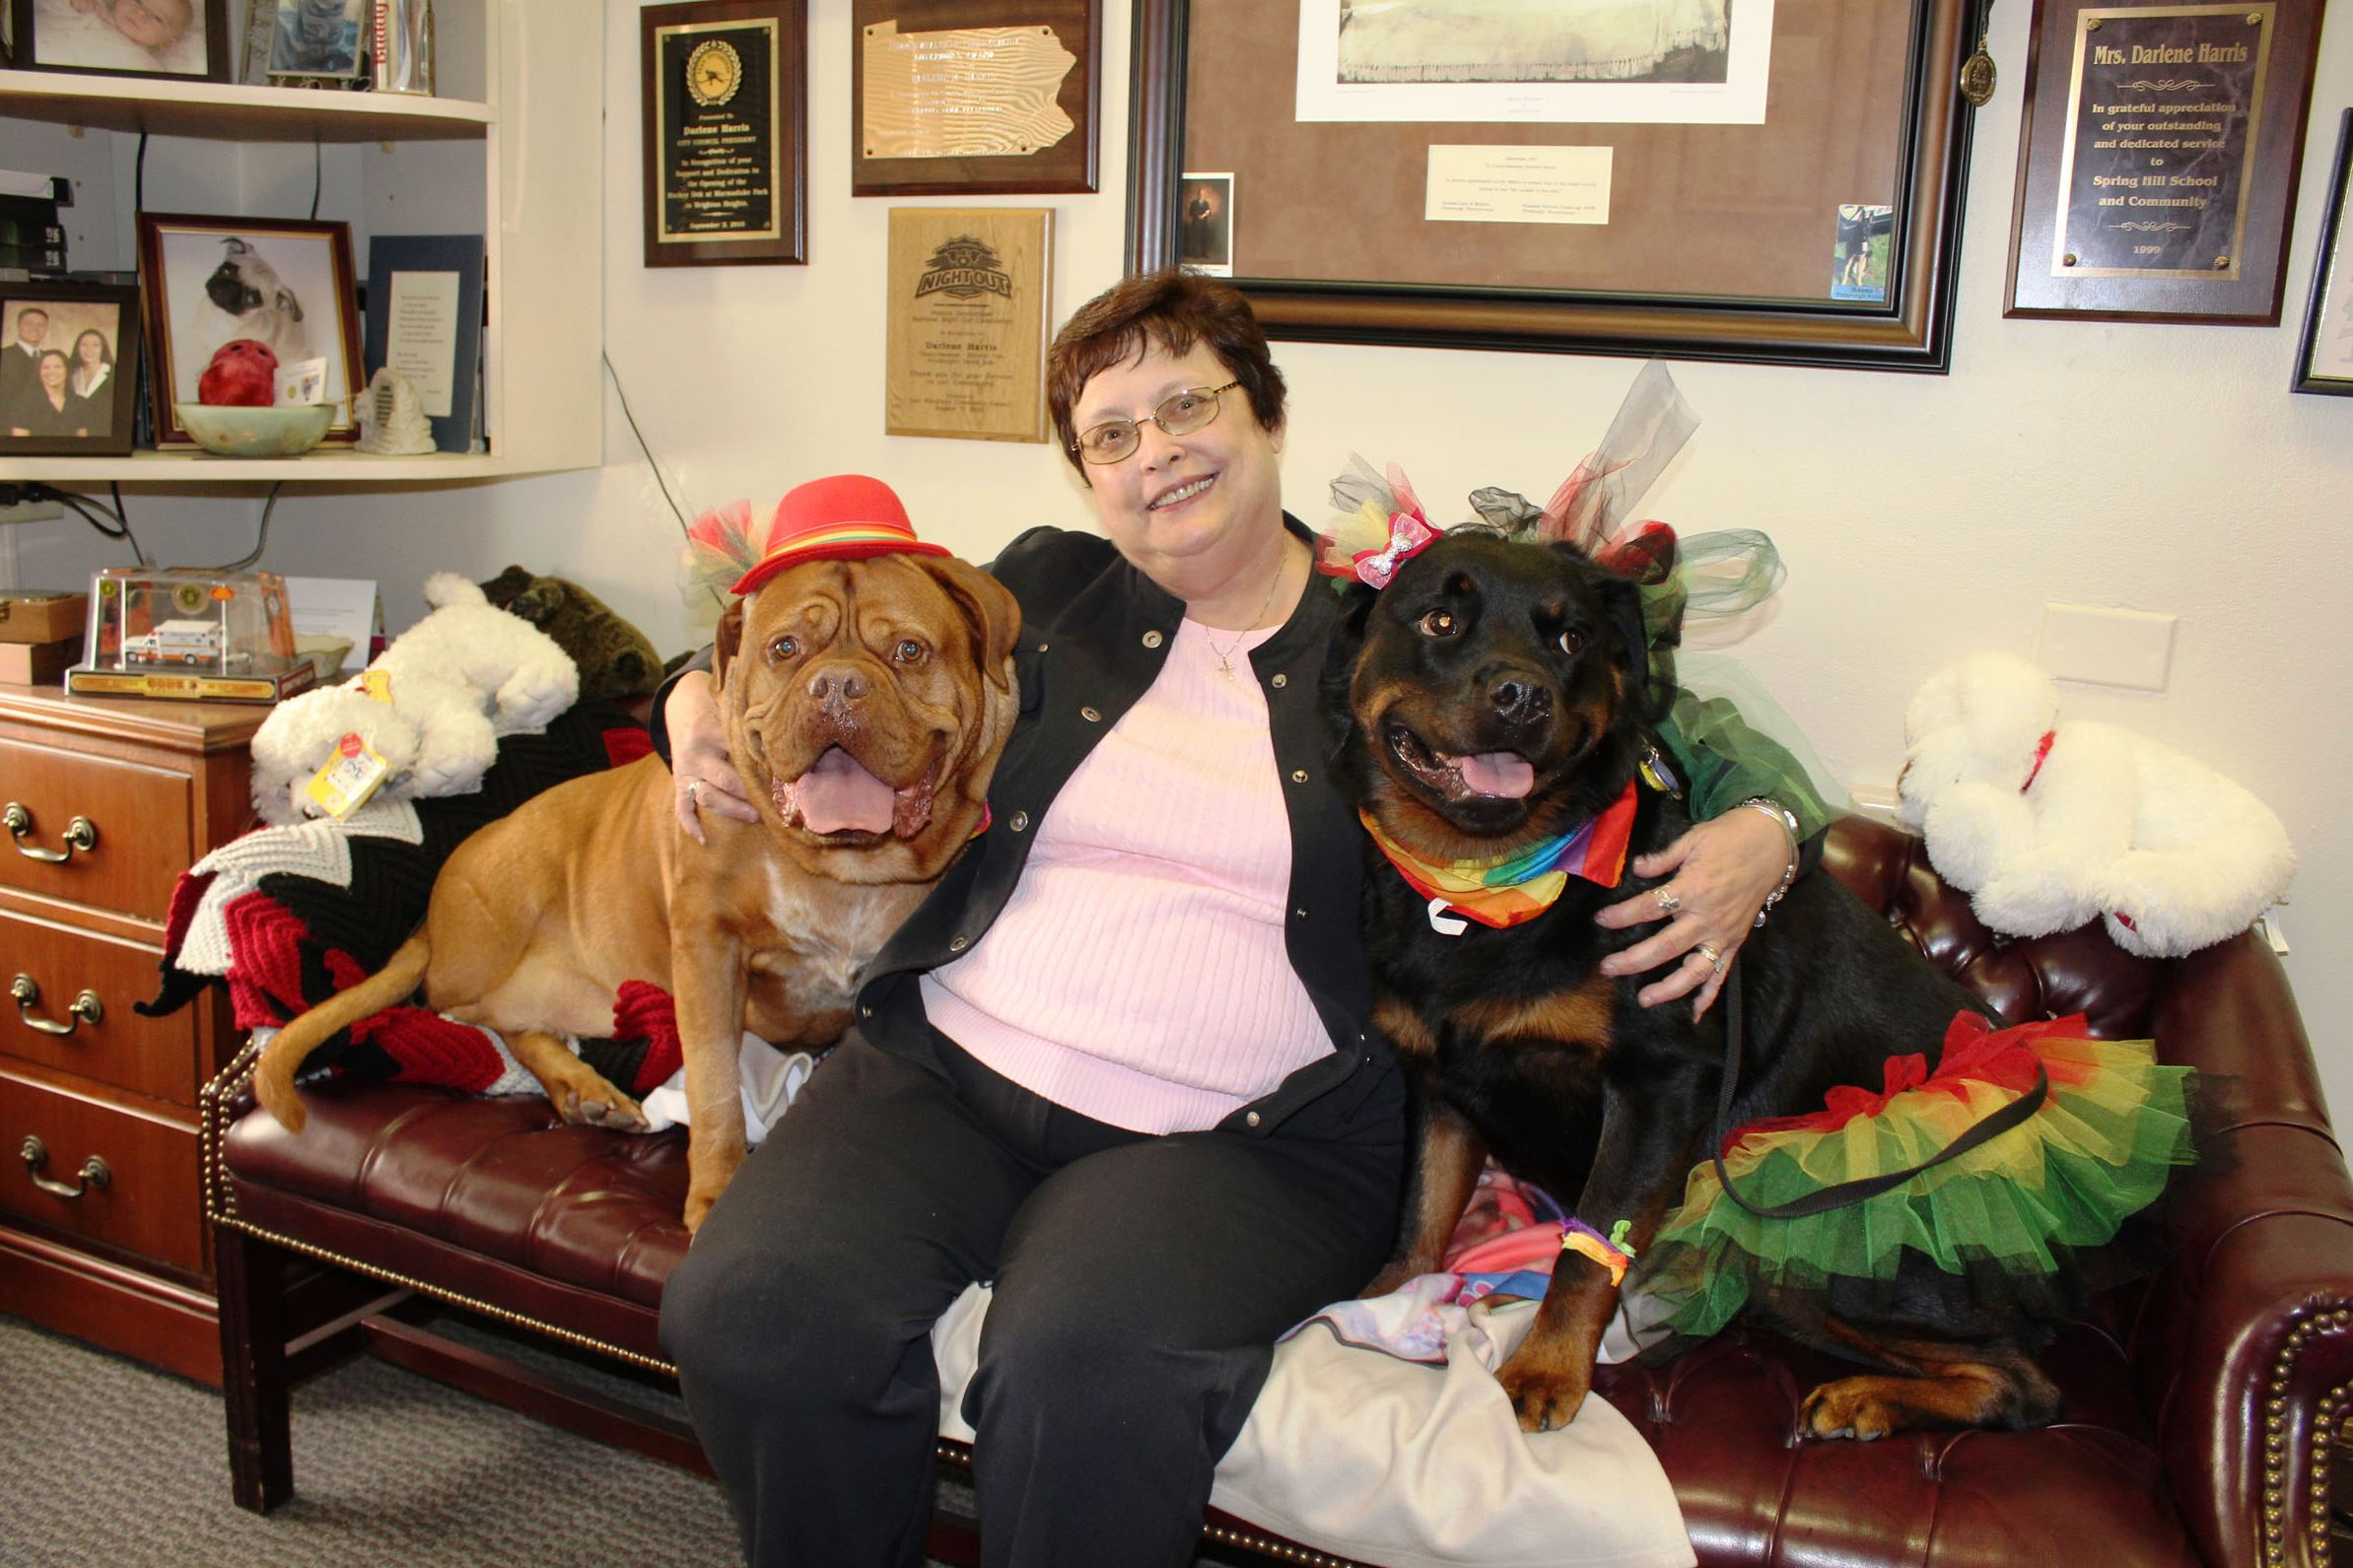 darlene harris with the dogs of dogday0701 Pittsburgh City Councilwoman Darlene Harris sponsored the resolution honoring Sebastian, left, a dogue de Bordeaux, and Arianna, a Rottweiler, for their therapy work with Three Rivers Hospice and Family Home Health Services, Inc.